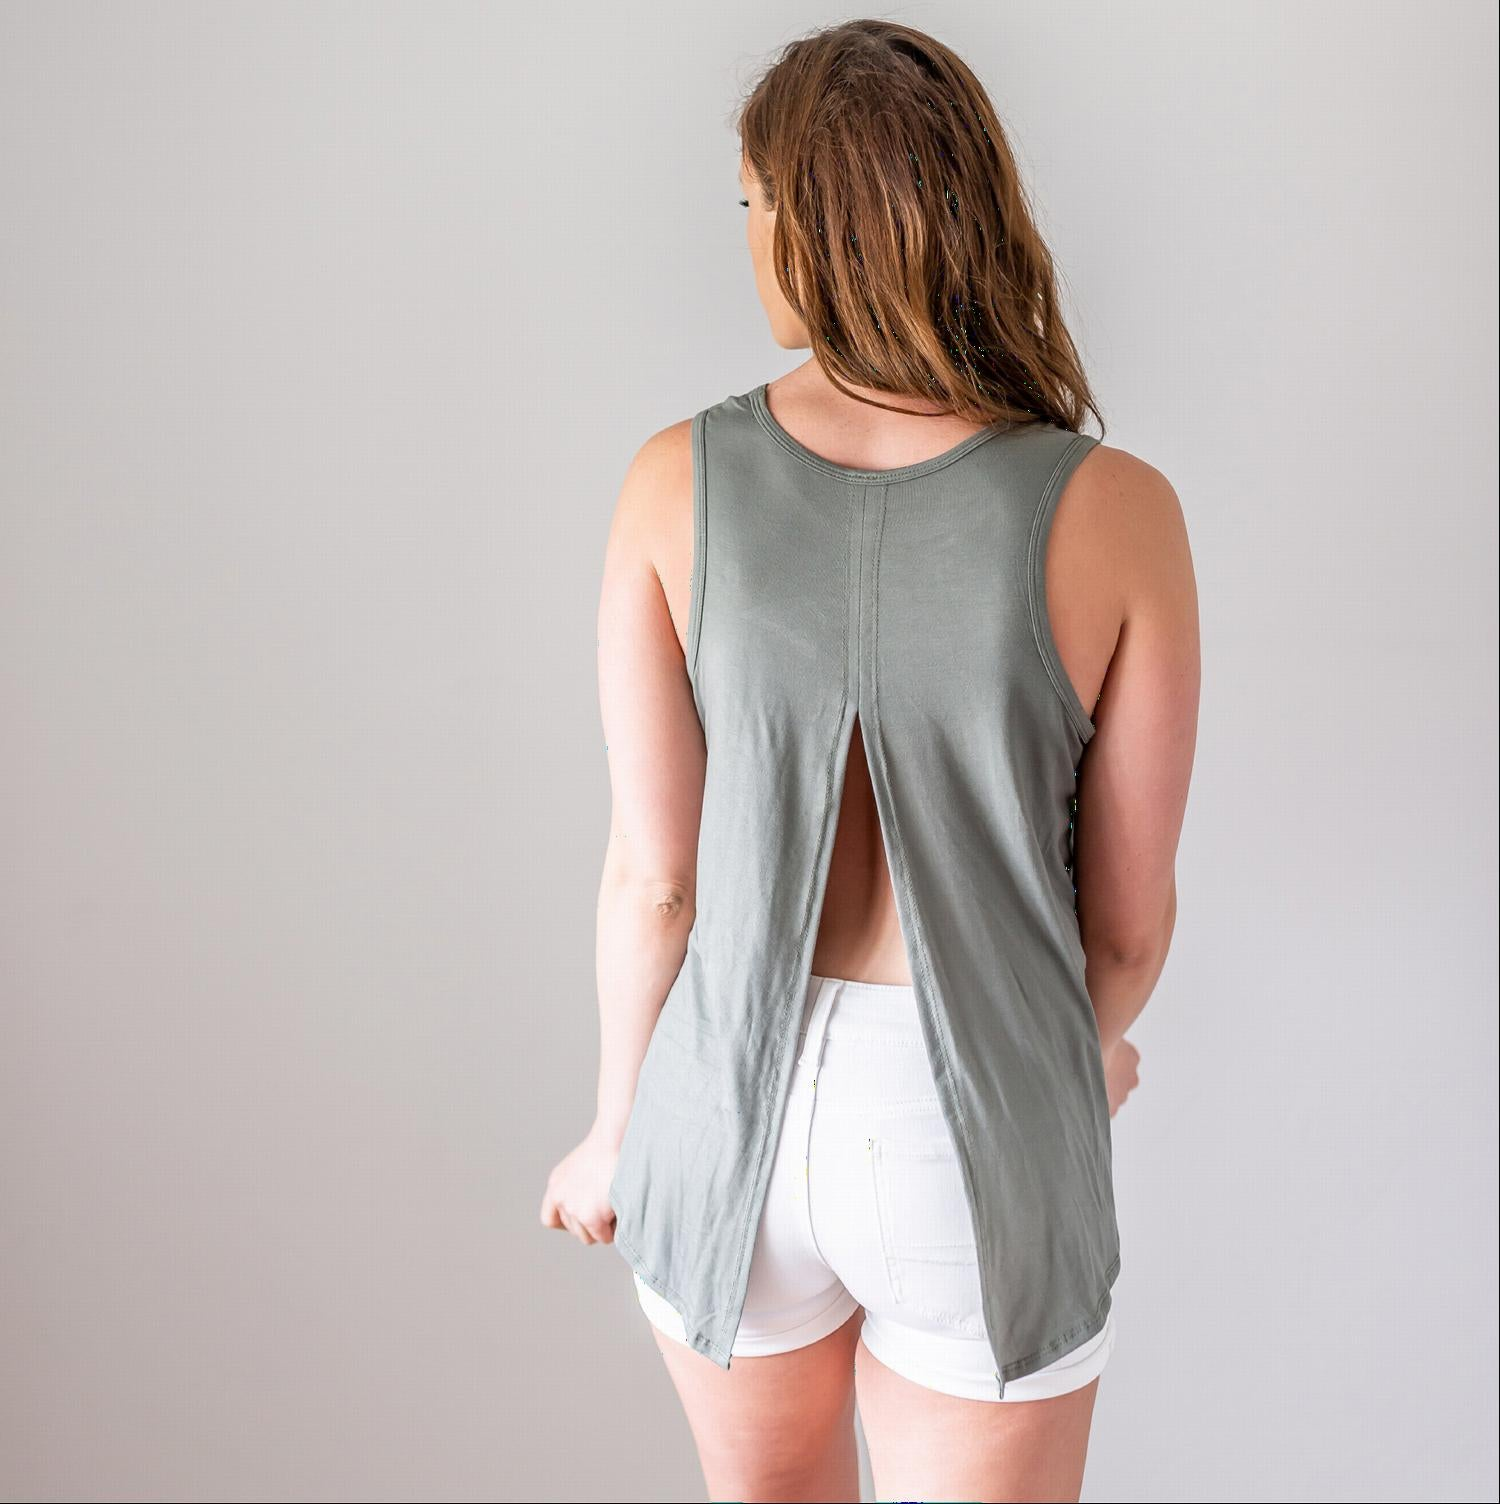 Olive Tank Top with Back Knot